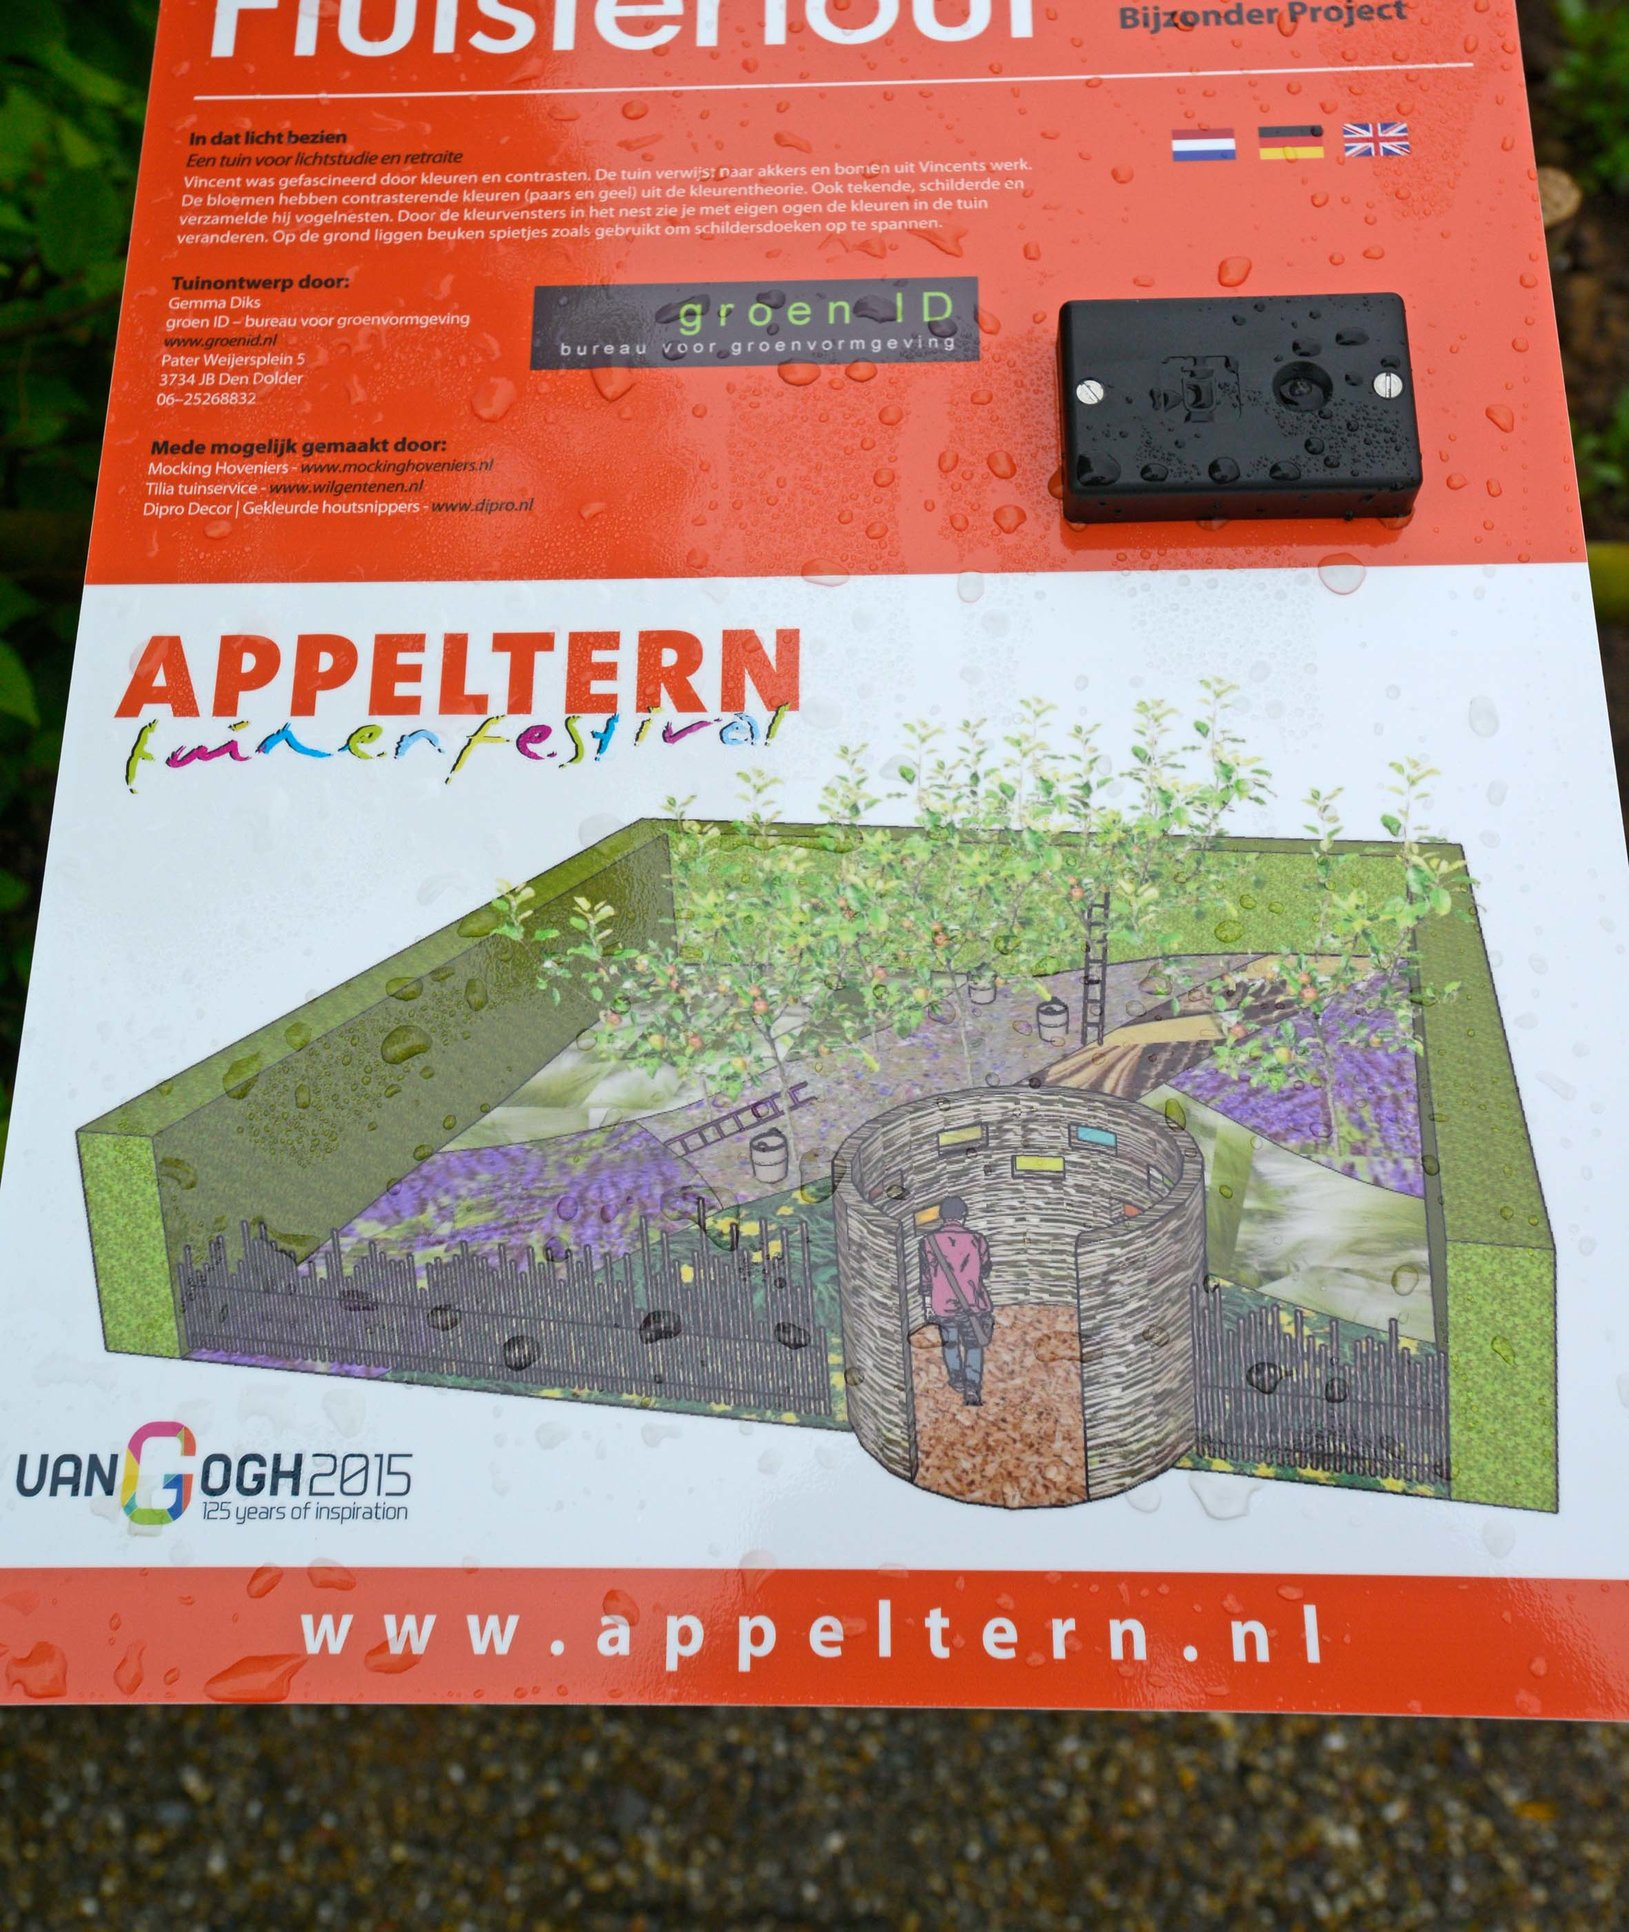 Mocking Hoveniers Appeltern Tuinfestival 2015